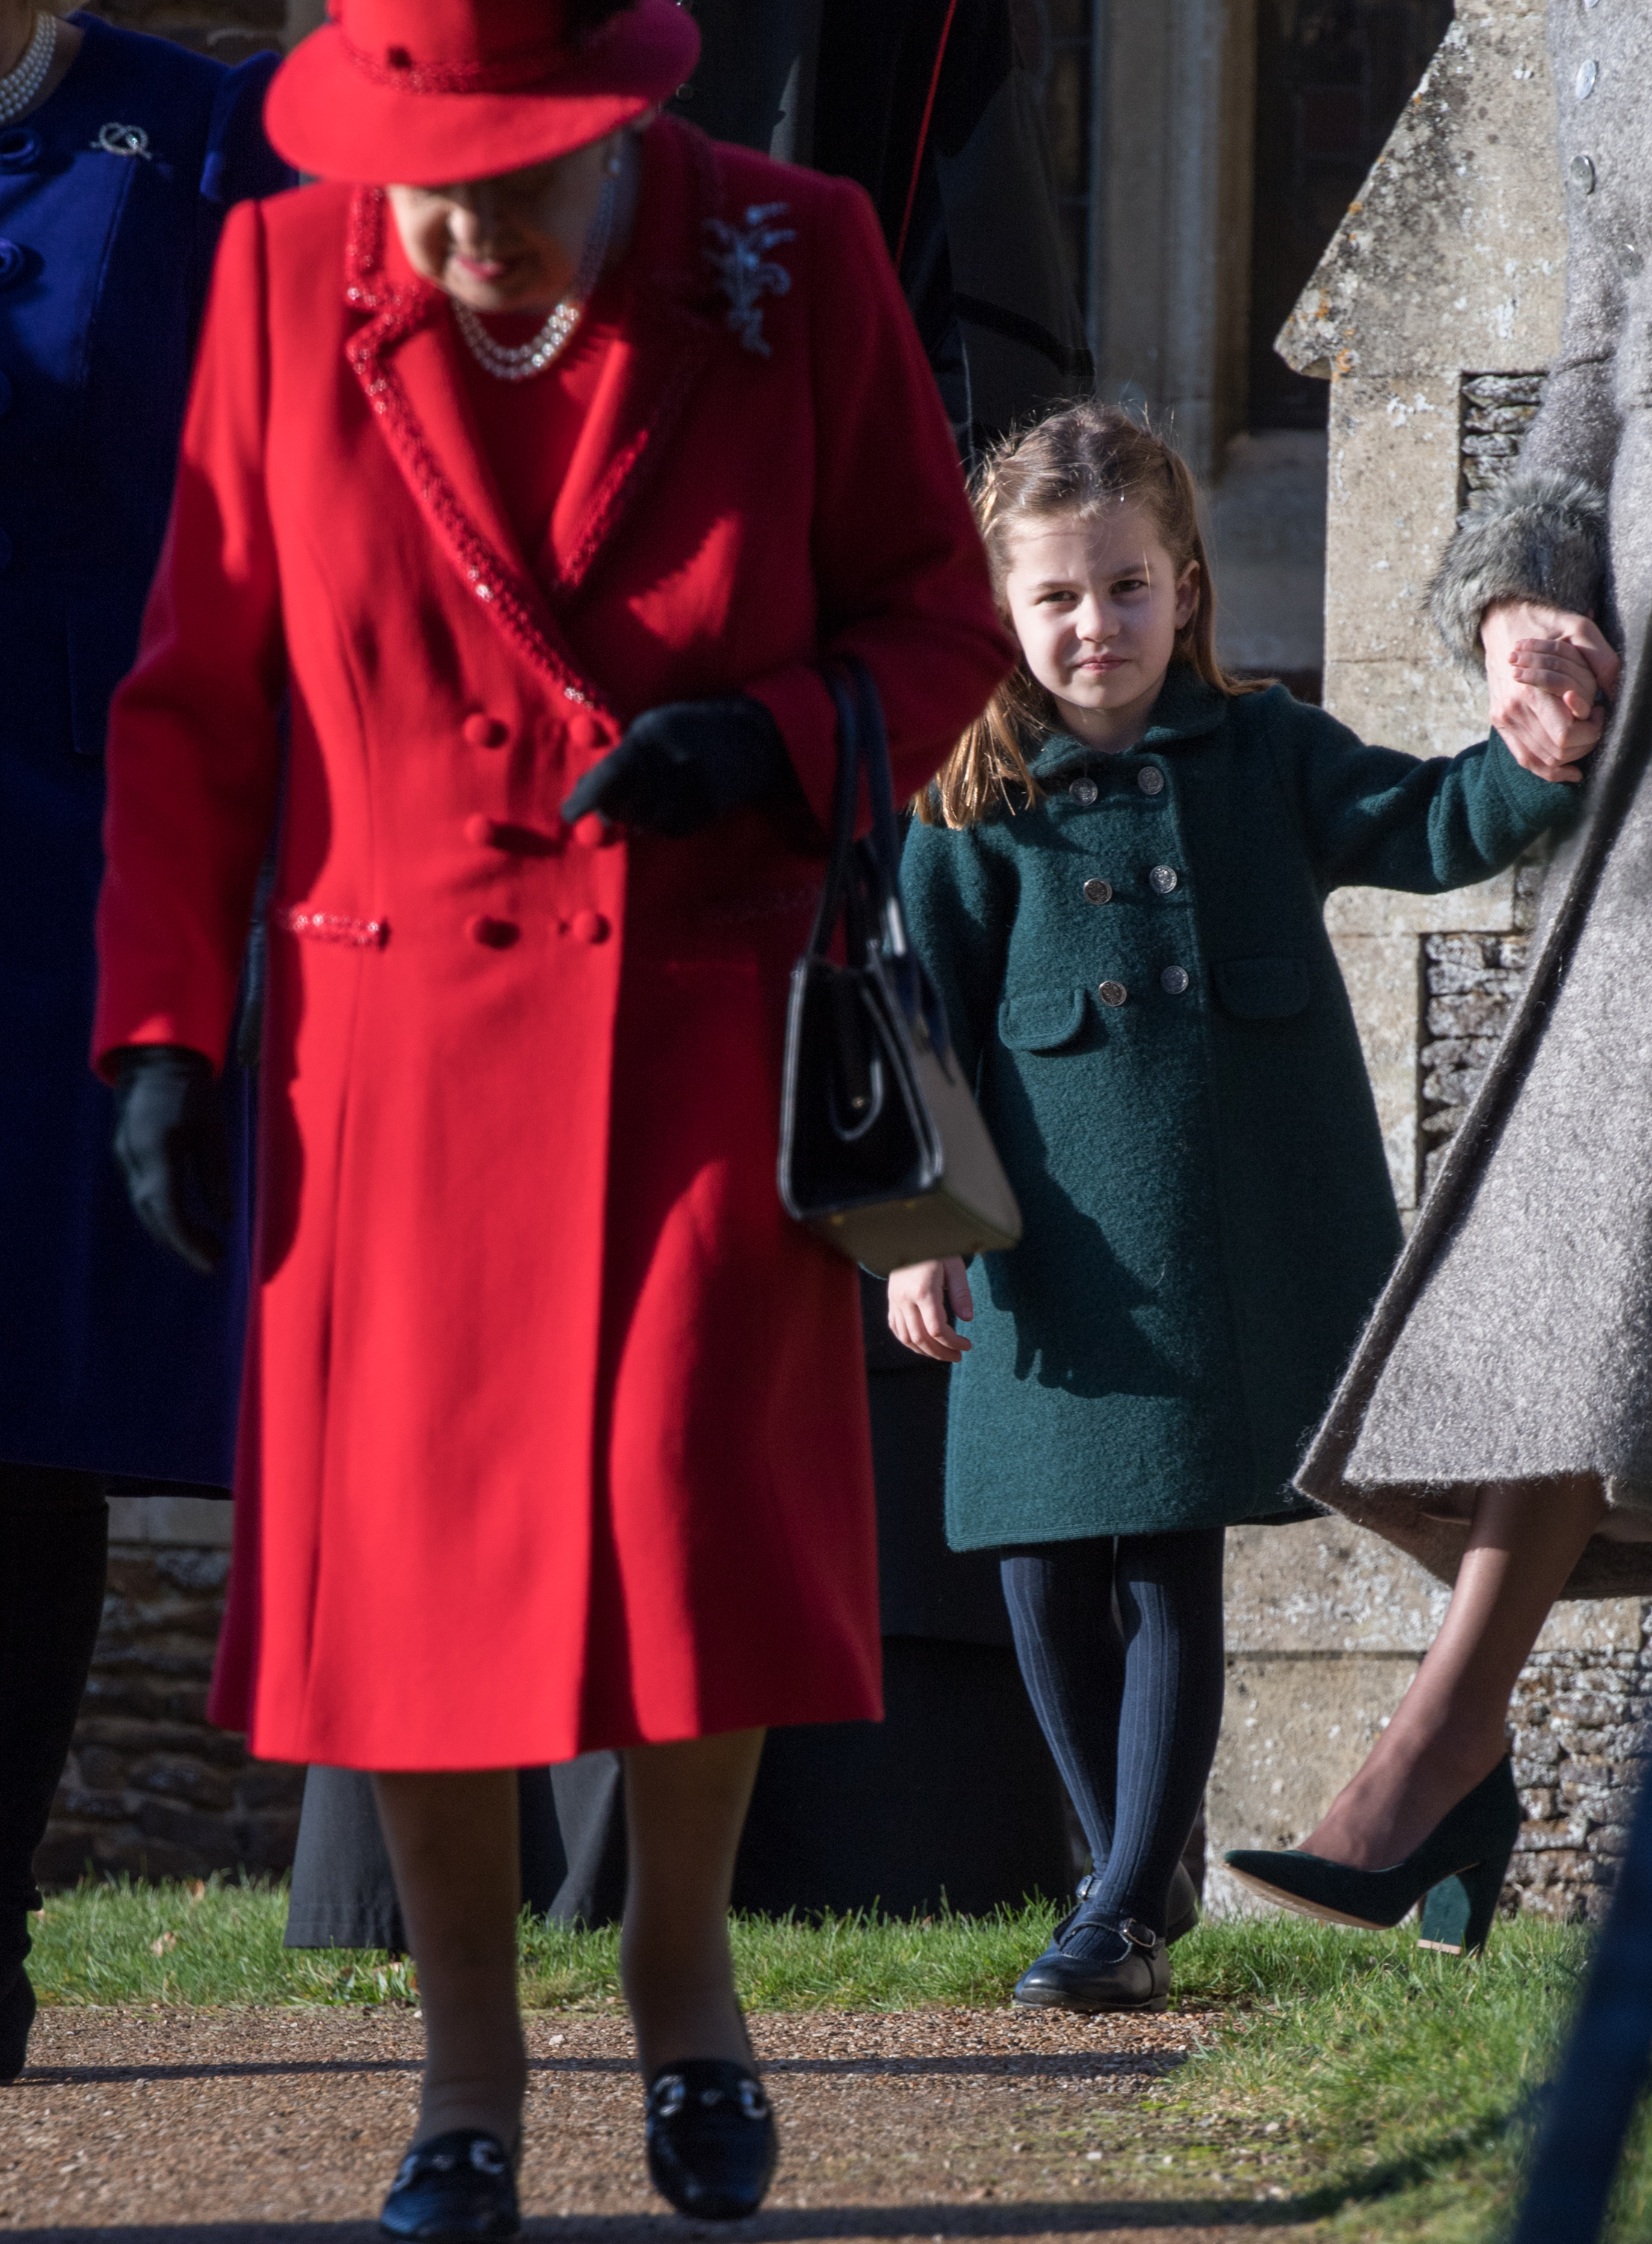 KING'S LYNN, ENGLAND - DECEMBER 25: Princess Charlotte of Cambridge attends the Christmas Day Church service at Church of St Mary Magdalene on the Sandringham estate on December 25, 2019 in King's Lynn, United Kingdom. (Photo by Pool/Samir Hussein/WireImage)